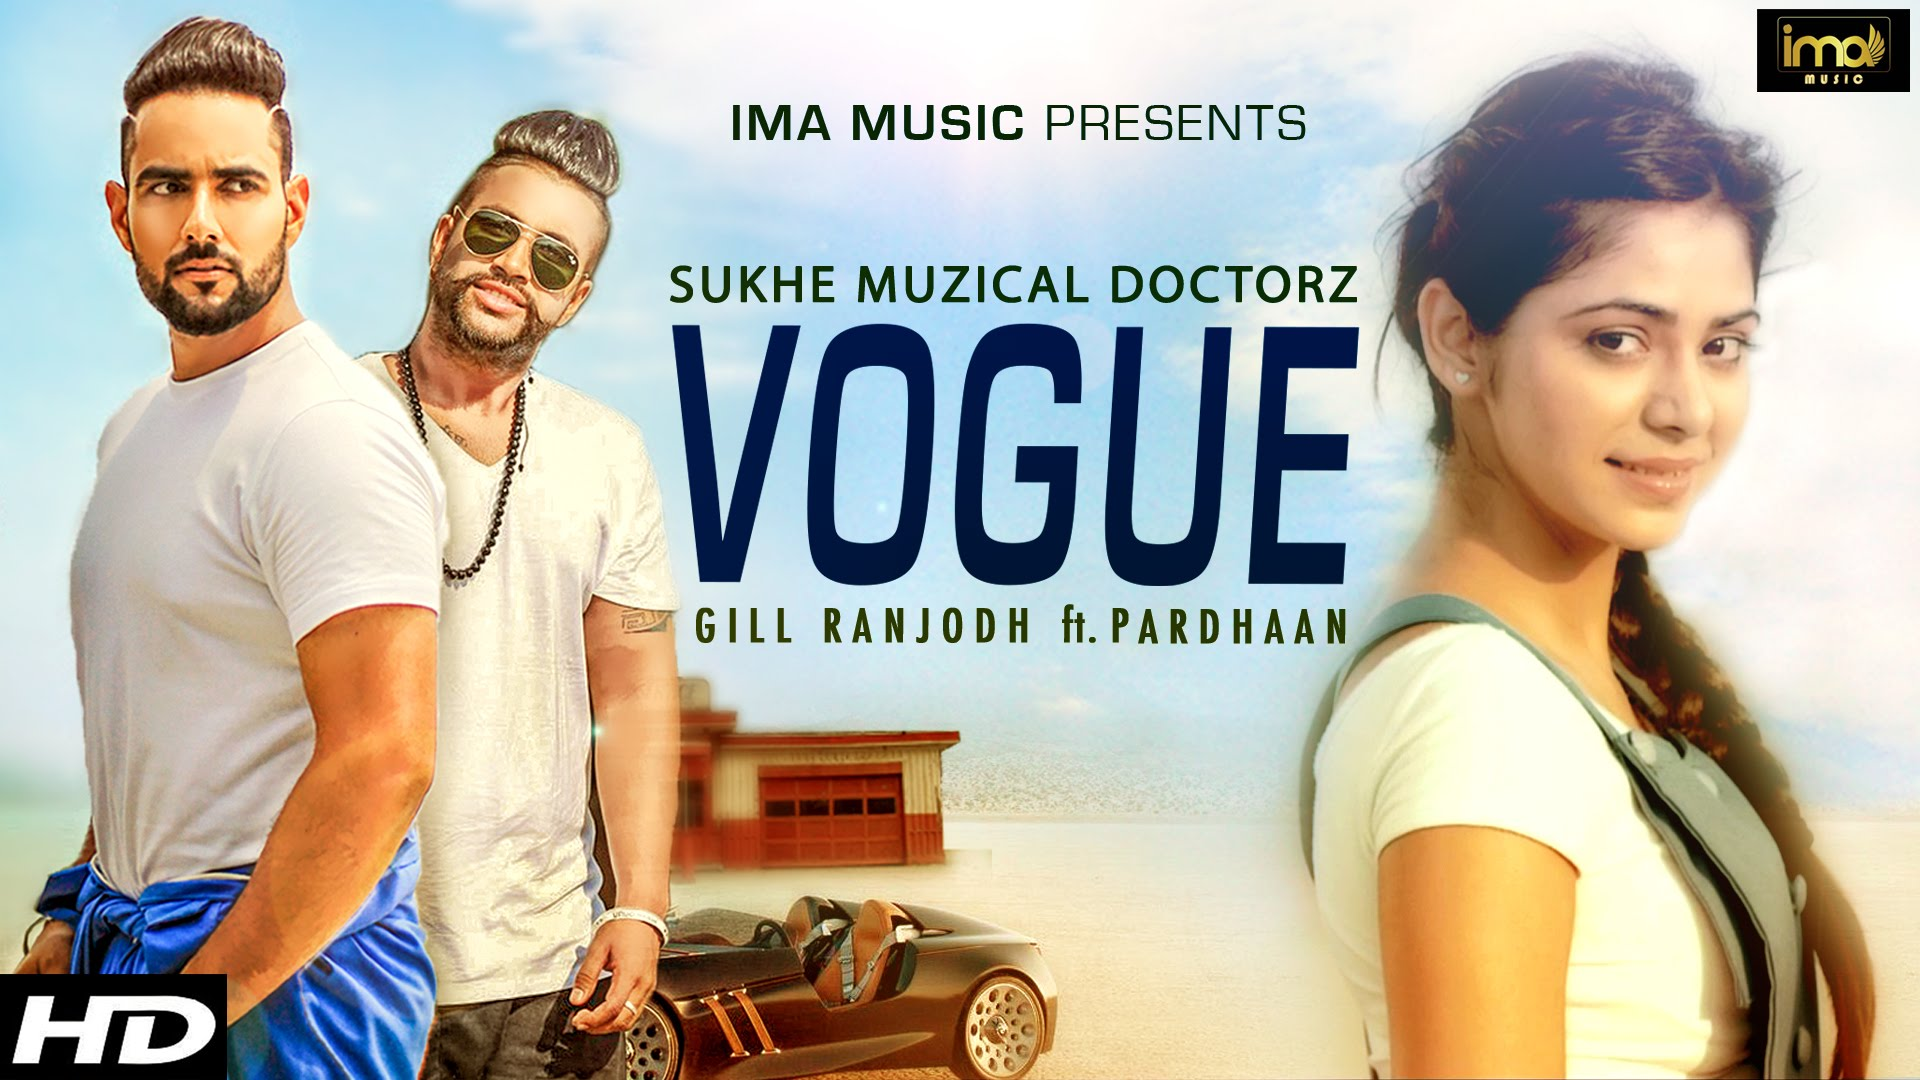 vogue pardhaan muzical doctorz gill ranjodh